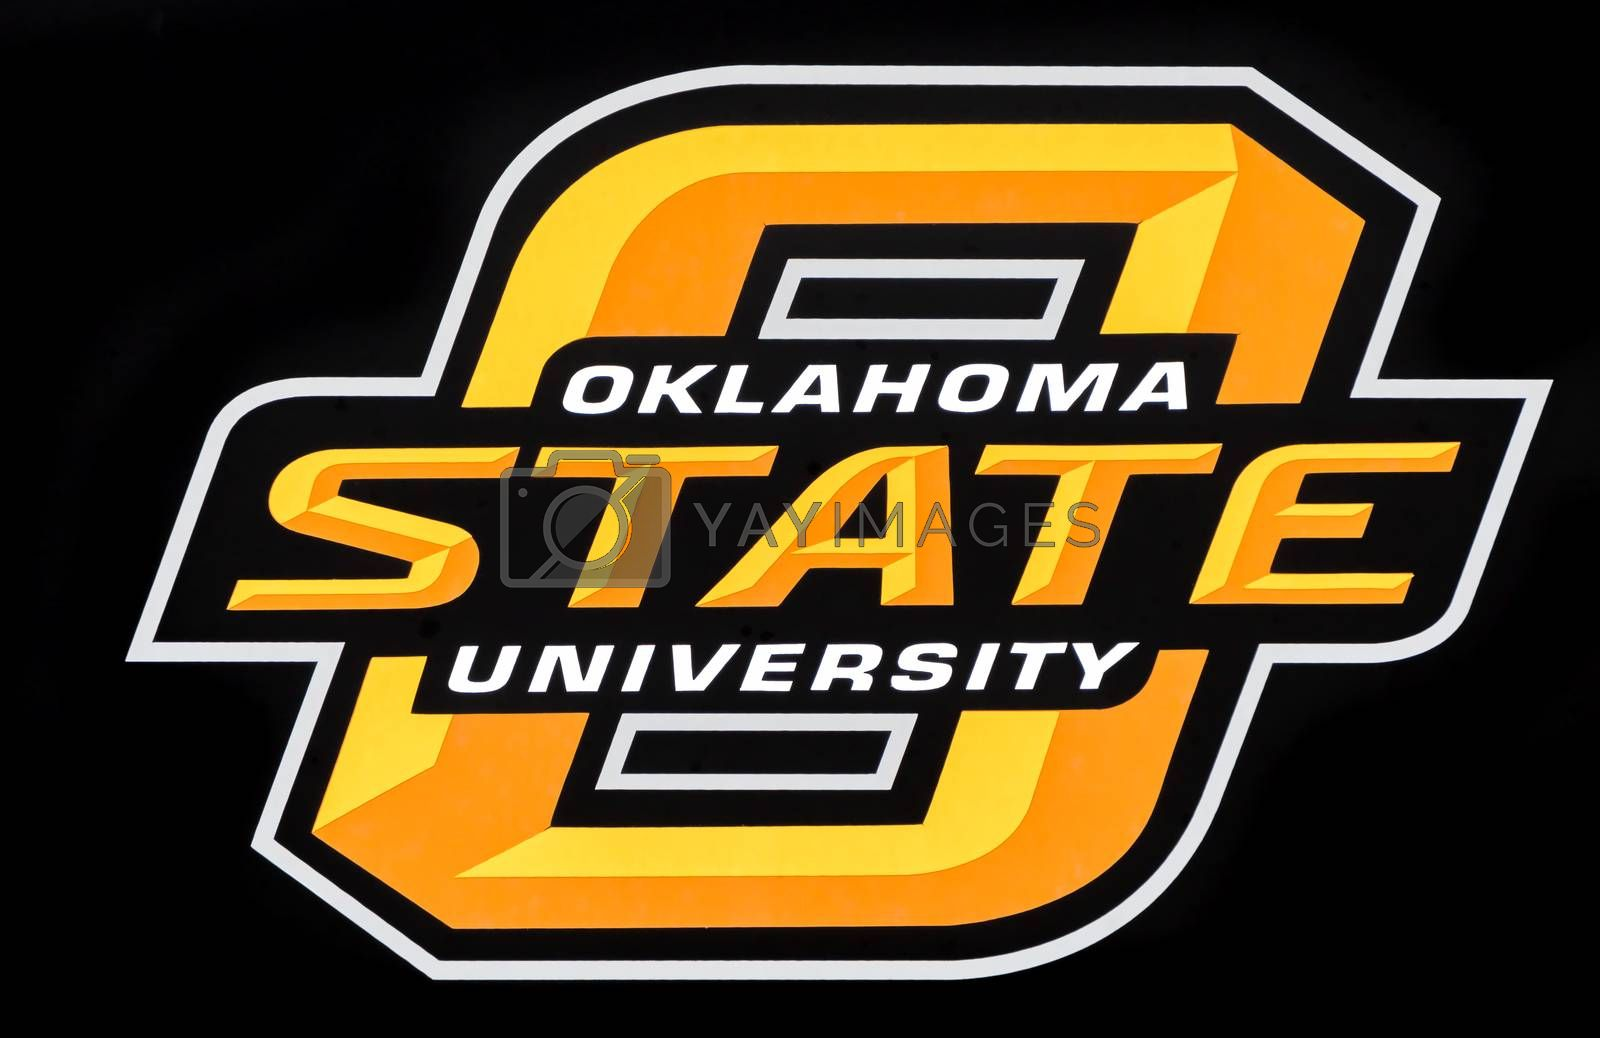 STILLWATER, OK/USA - MAY 20, 2016: Oklahoma State University logo and seal on the campus of Oklahoma State University.